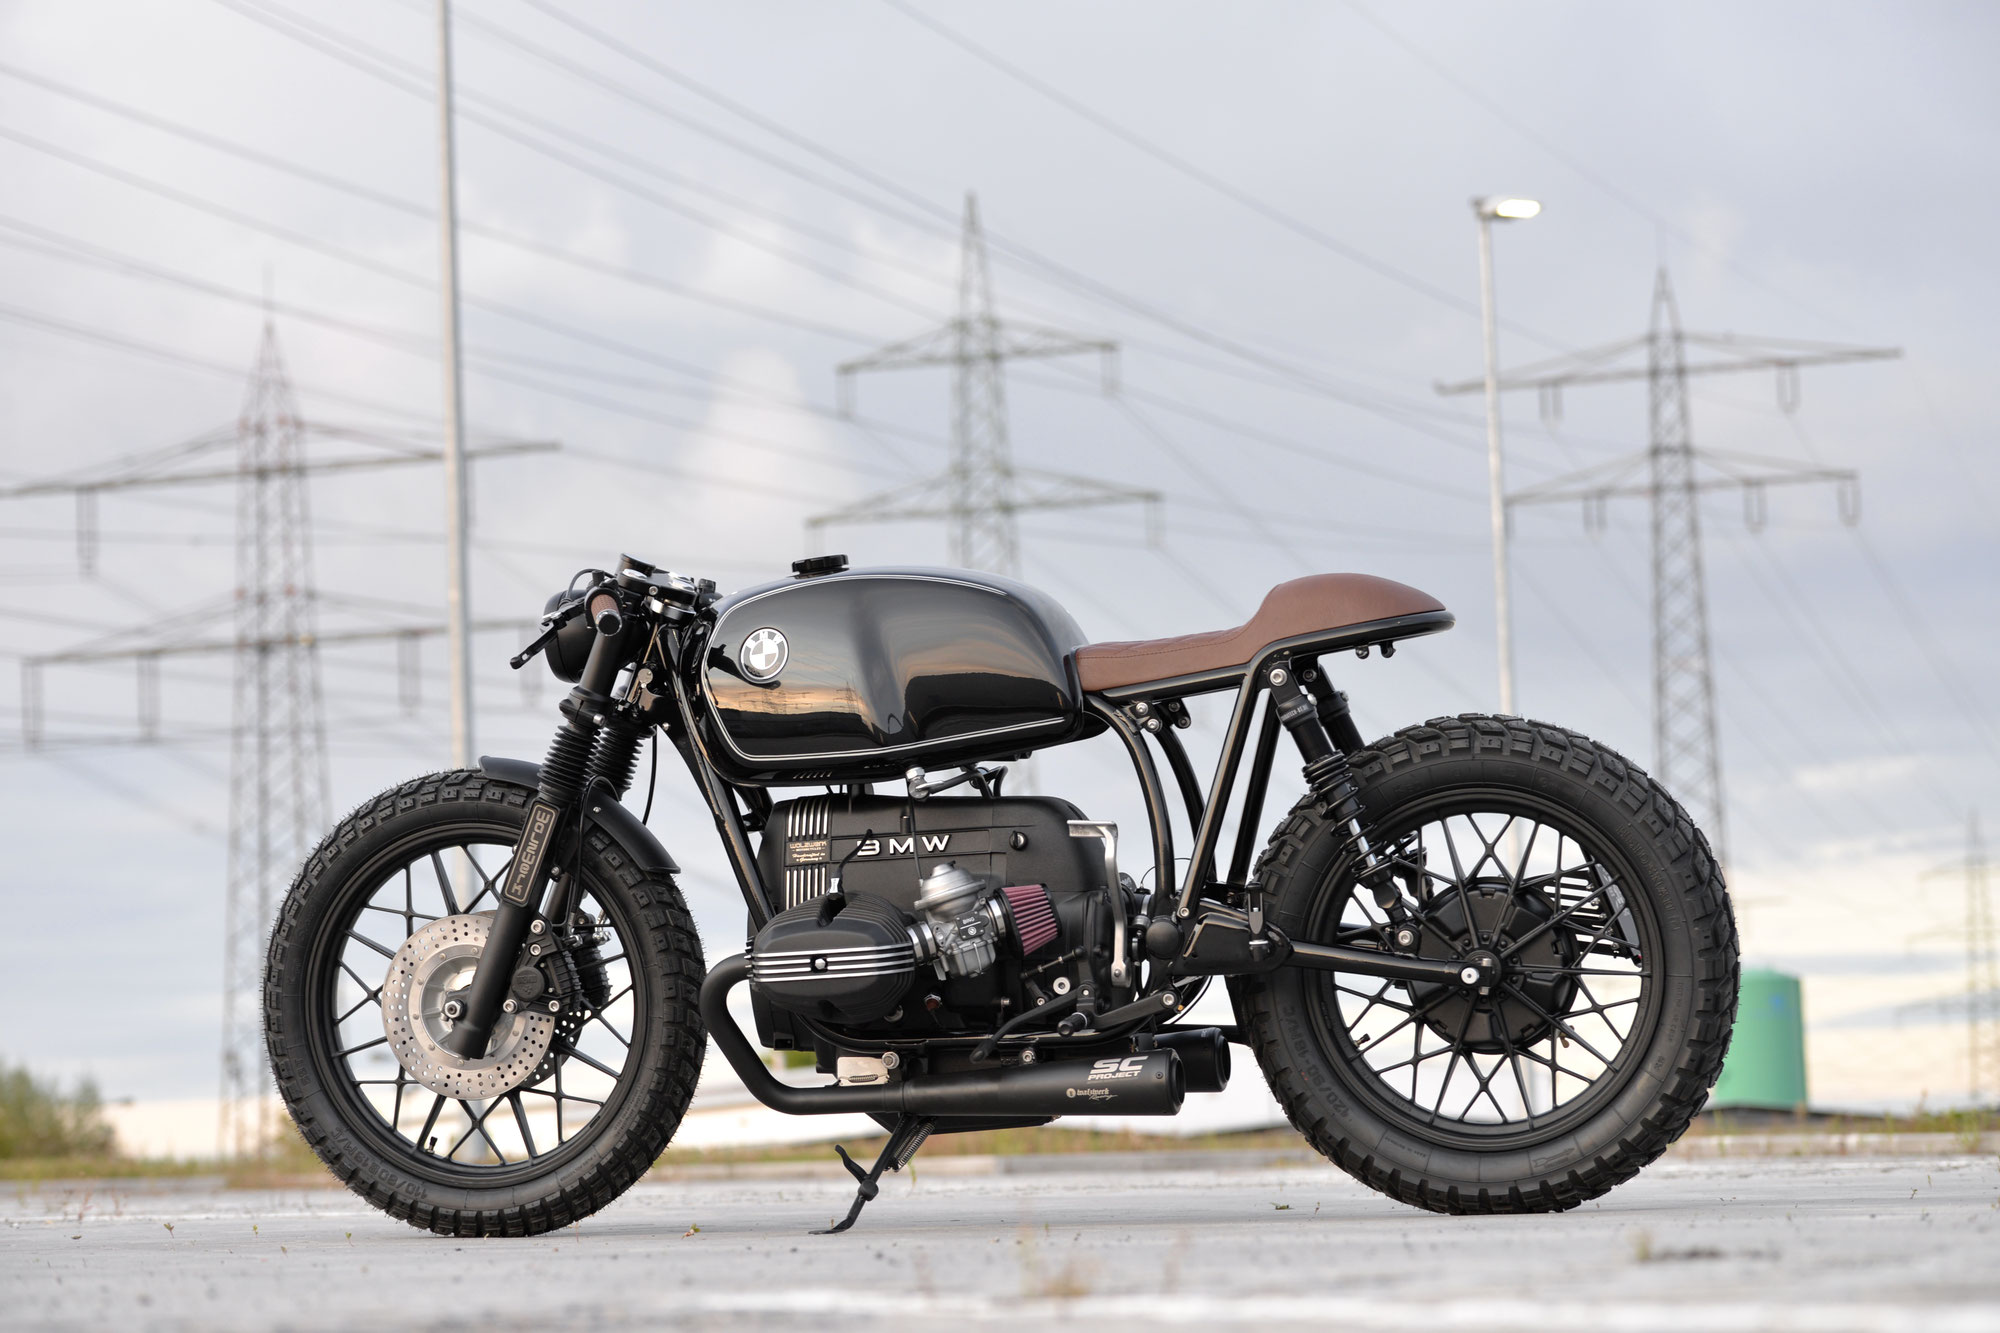 New Bike: SCHIZZO® Cafe Racer for Kevin Trapp!